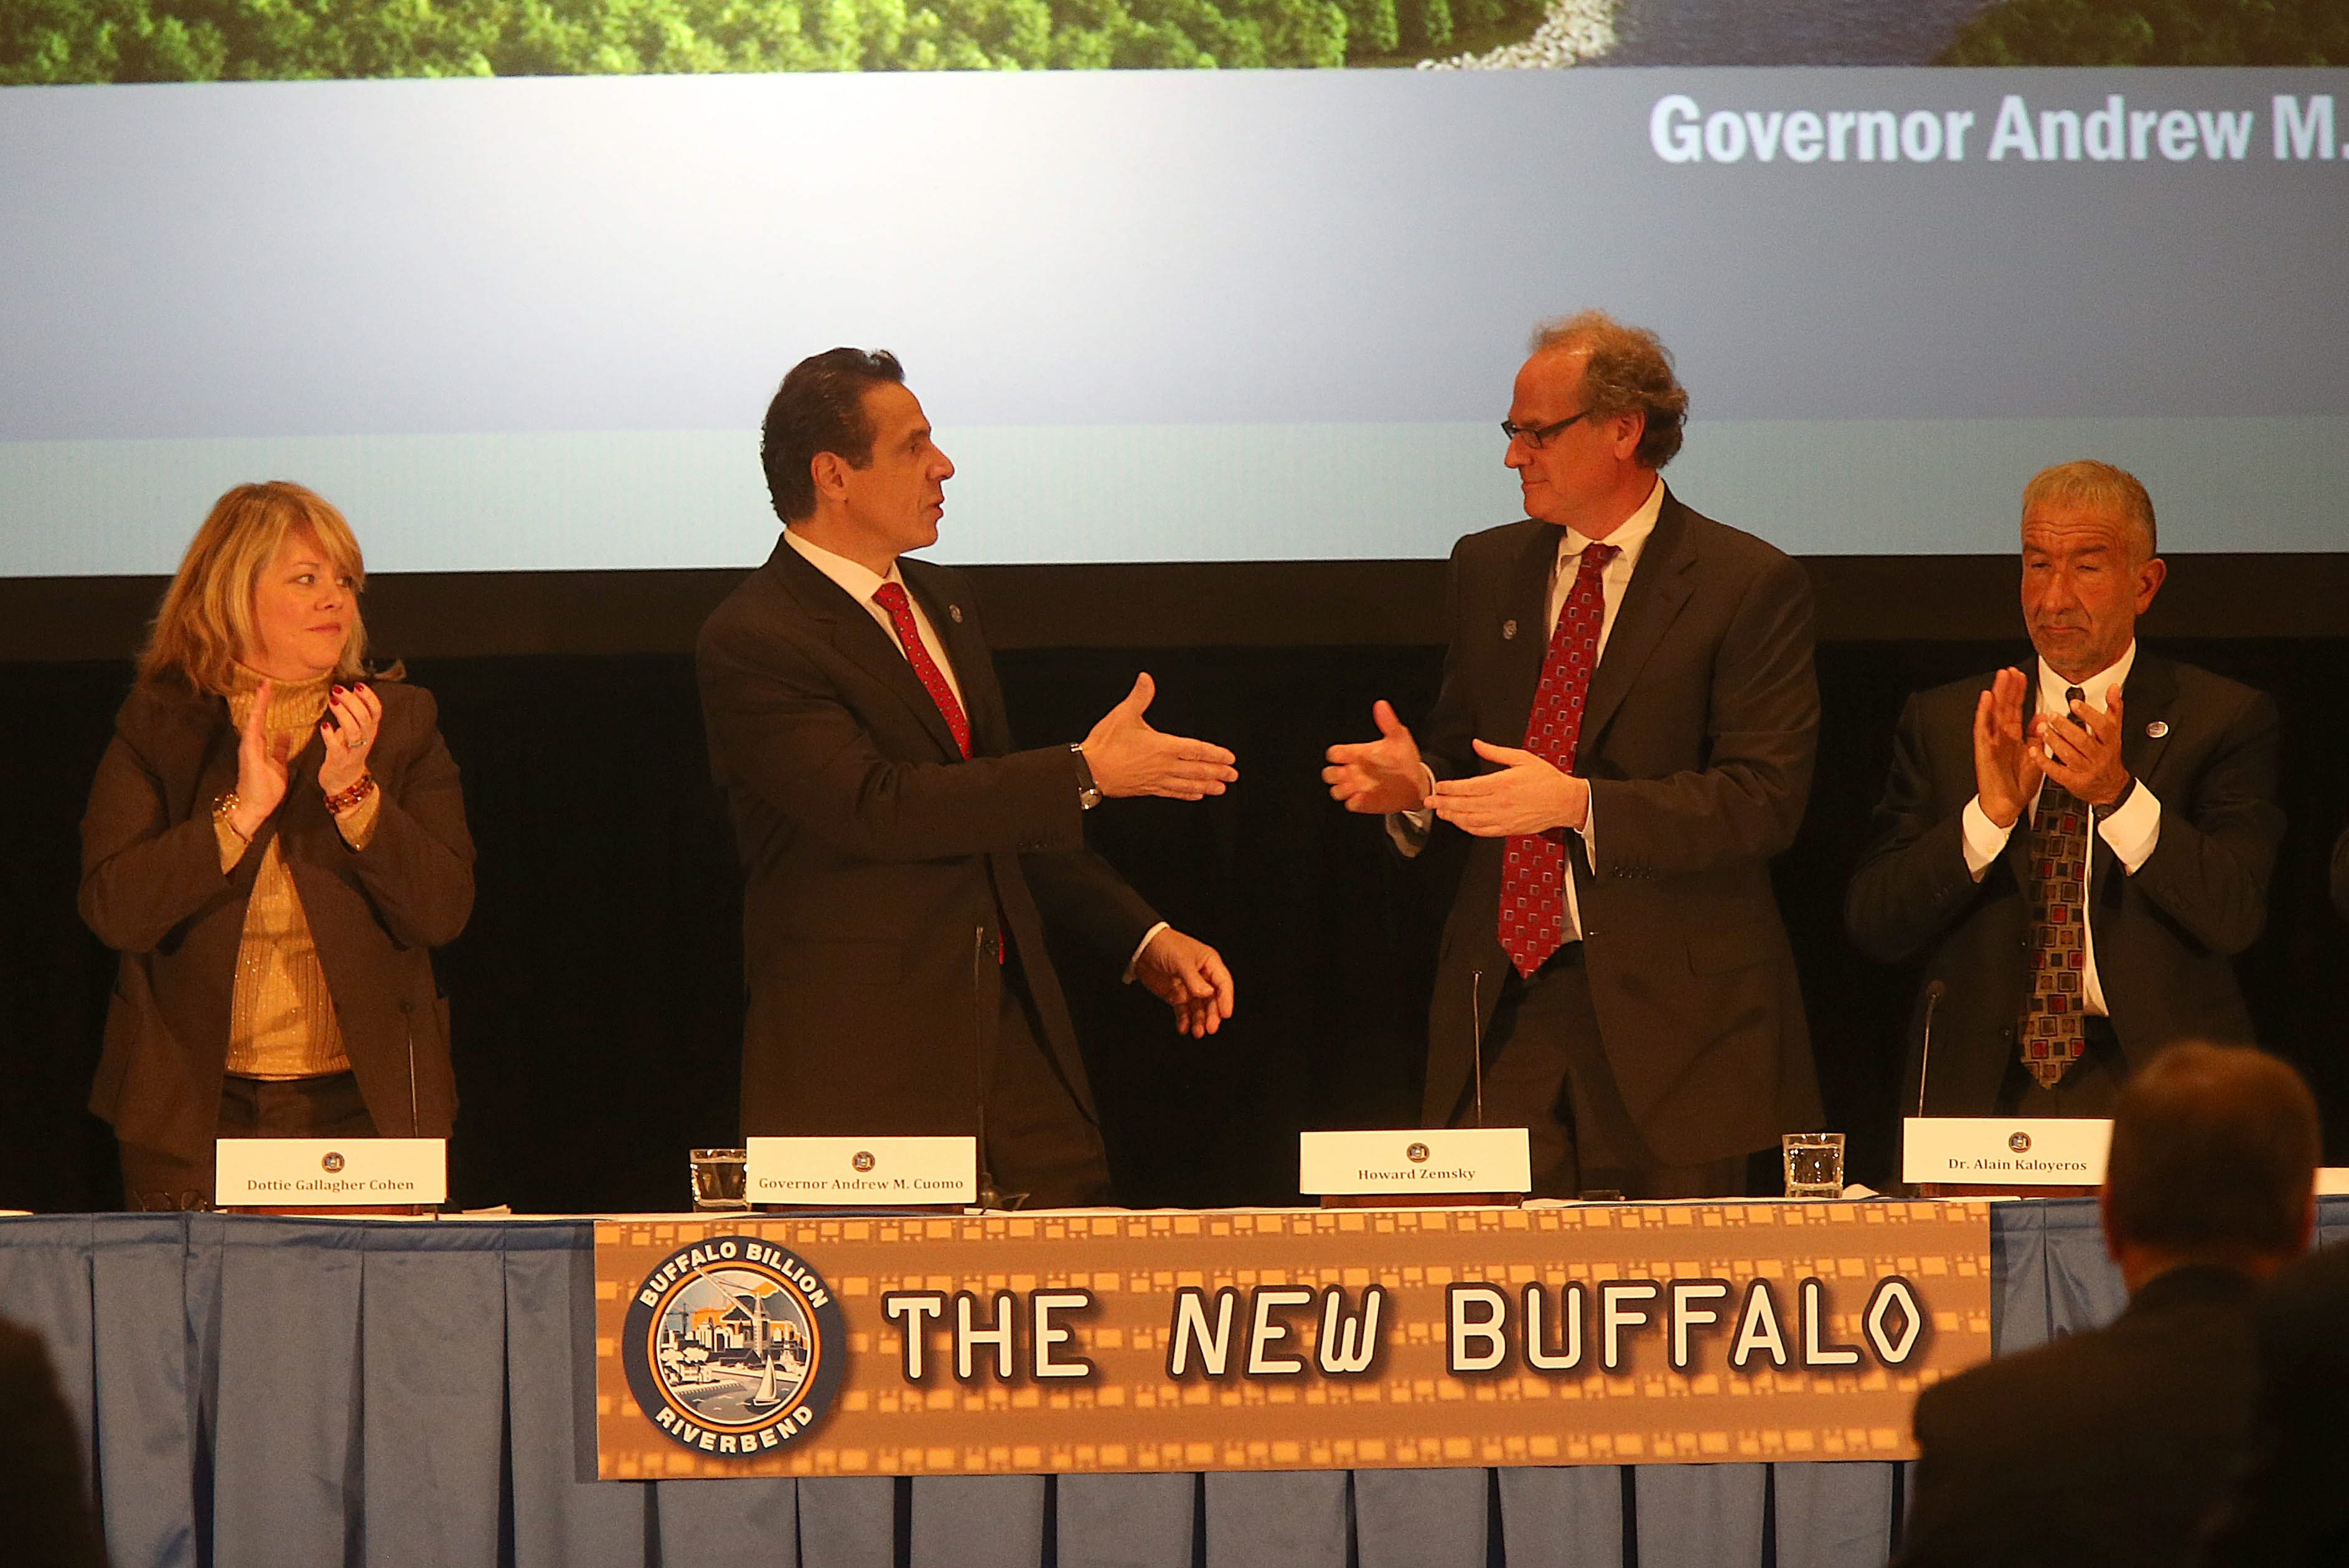 Gov. Andrew M. Cuomo congratulates Howard Zemsky at Thursday's announcement that the state will invest $225 million to build the Buffalo High-Tech Manufacturing Innovation Hub.